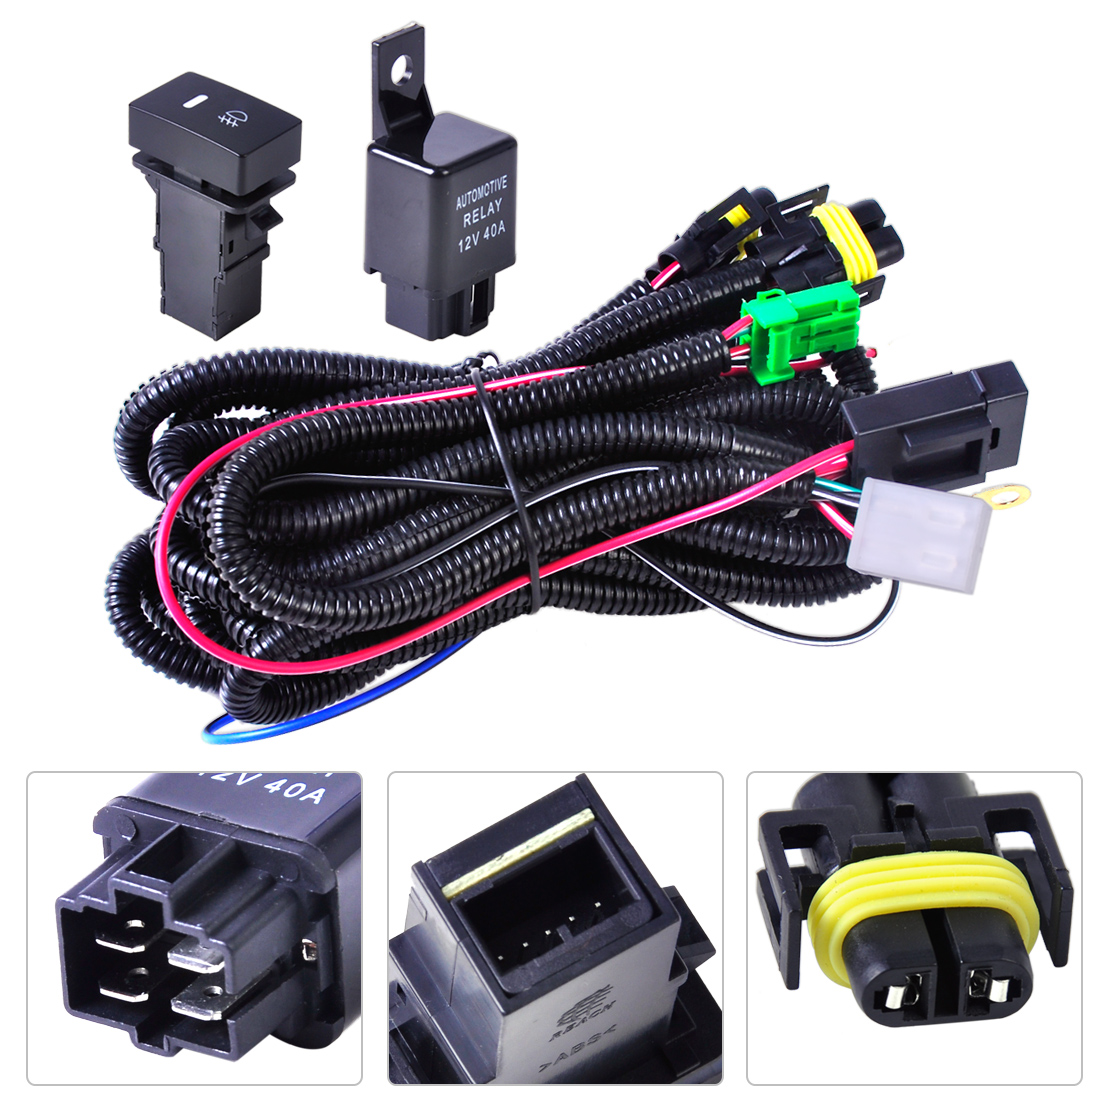 Wiring Harness Sockets + Switch for H11 Fog Light Lamp Ford Focus Acura  Nissan 728360607010 | eBay